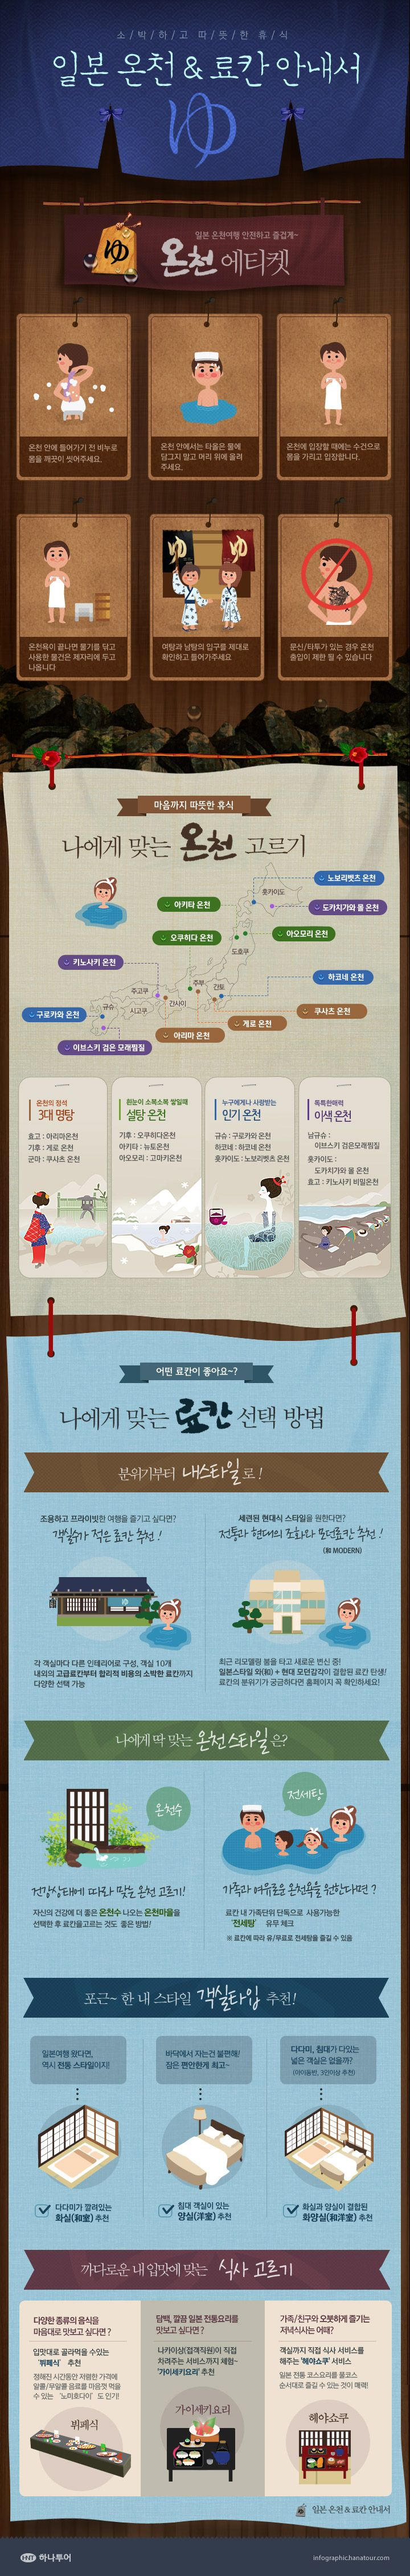 마음까지 따뜻한 휴식, 일본 온천&료칸 안내서에 관한 인포그래픽 // Hi Friends, look what I just found on #web #design! Make sure to follow us @moirestudiosjkt to see more pins like this | Moire Studios is a thriving website and graphic design studio based in Jakarta, Indonesia.